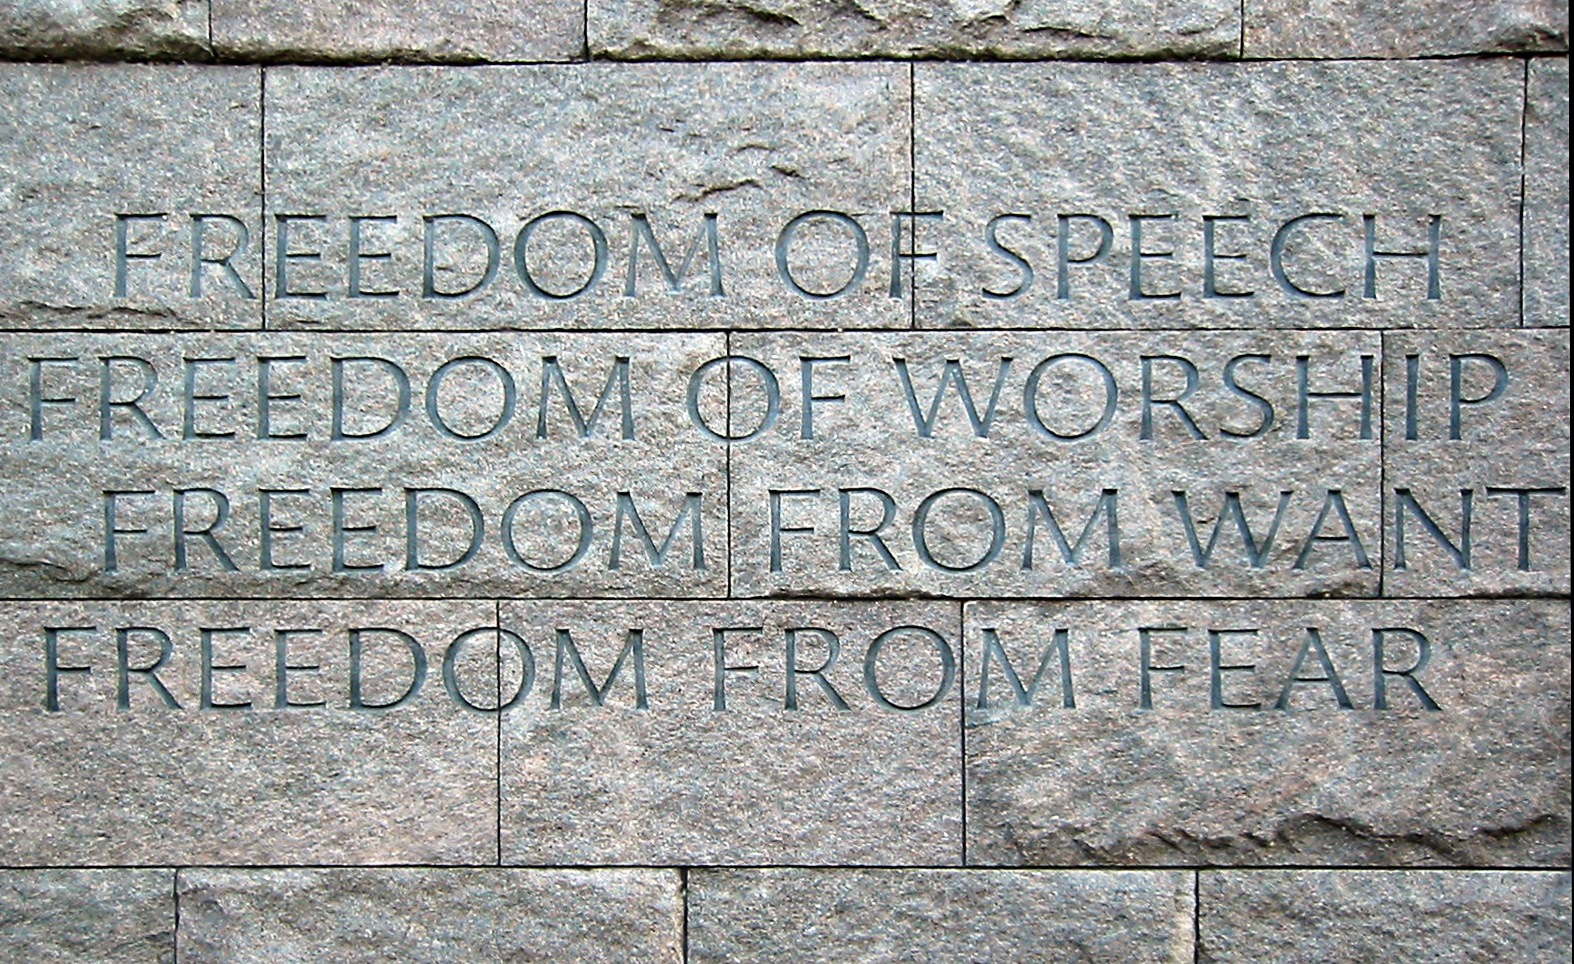 "The Four Freedoms were goals articulated by United States President Franklin D. Roosevelt on January 6, 1941. In an address known as the Four Freedoms speech (technically the 1941 State of the Union address), he proposed four fundamental freedoms that people ""everywhere in the world"" ought to enjoy: Freedom of speech Freedom of worship Freedom from want Freedom from fear"